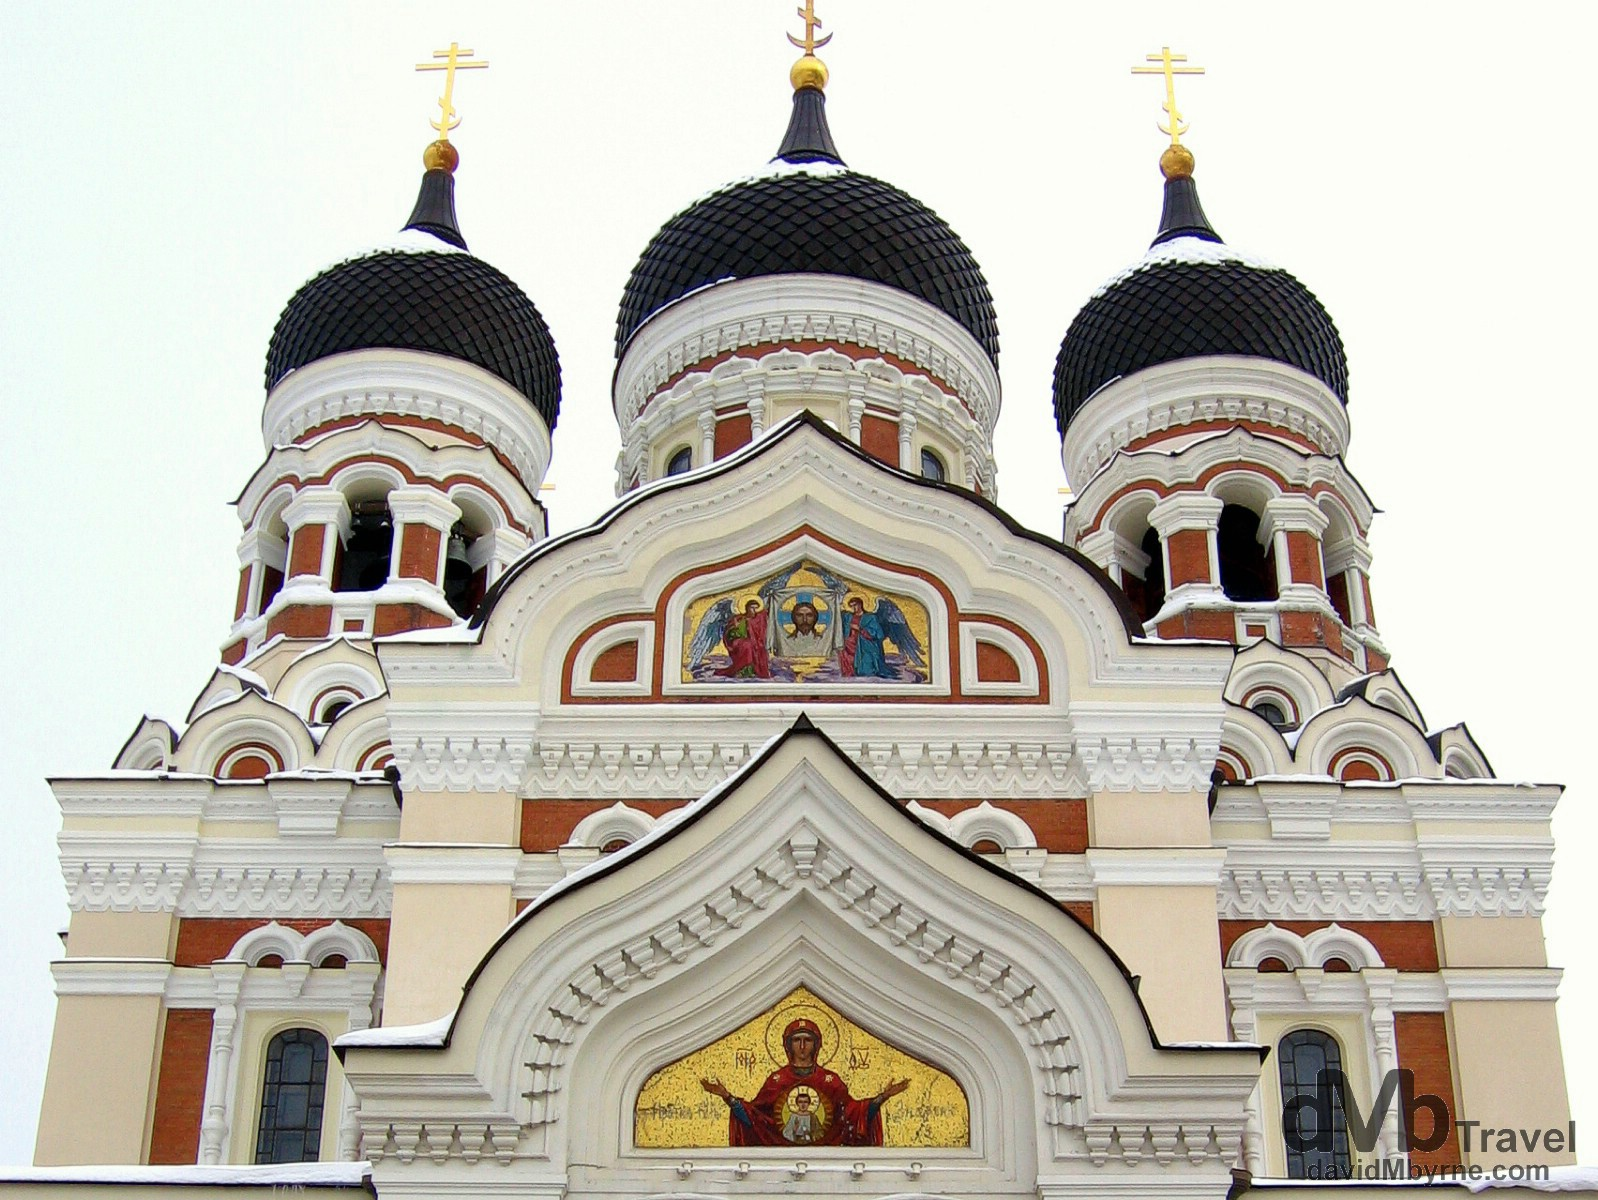 The facade of the Alexander Nevsky Cathedral, the largest and grandest orthodox church in the Old Town of Tallinn, Estonia. March 2, 2006.